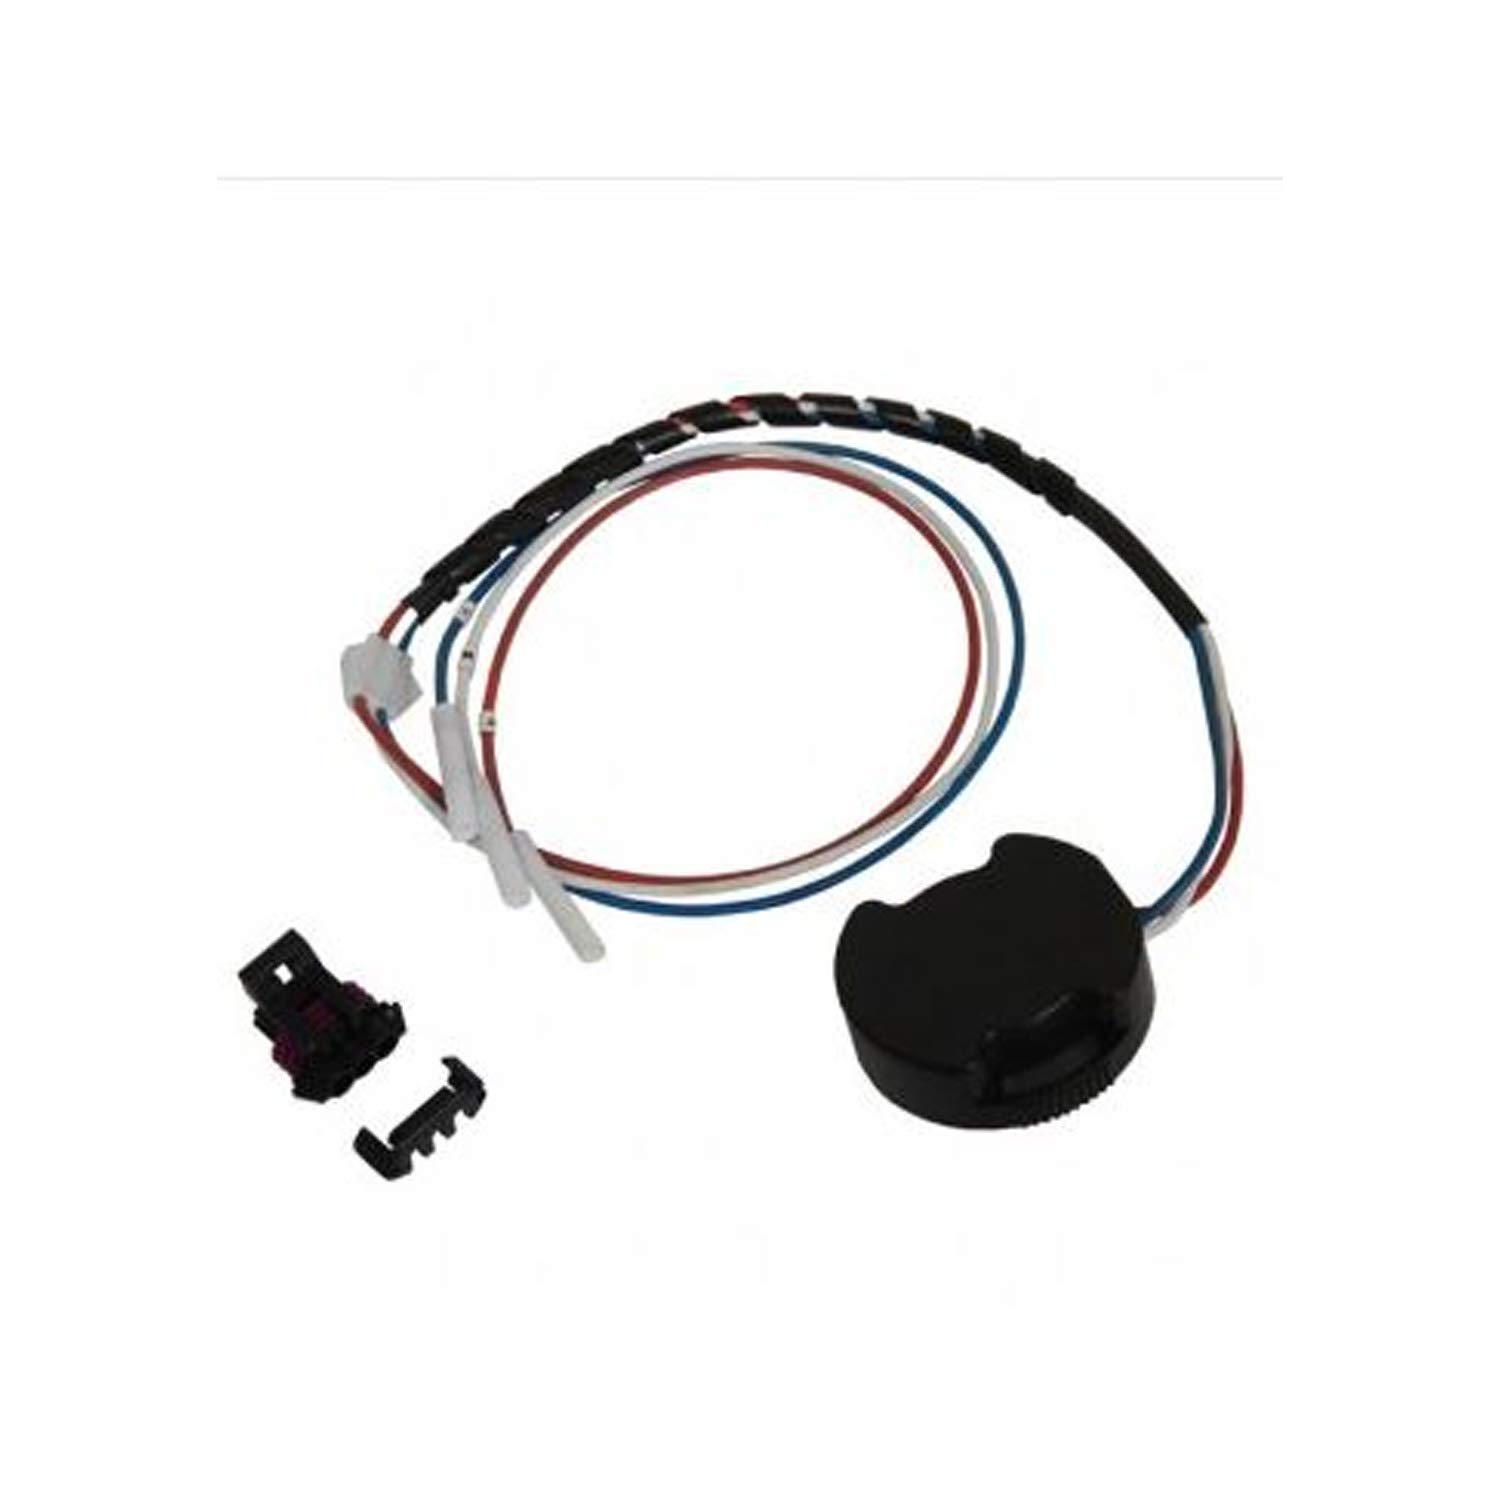 WRG-1822] Mercury Smartcraft Wiring Harness